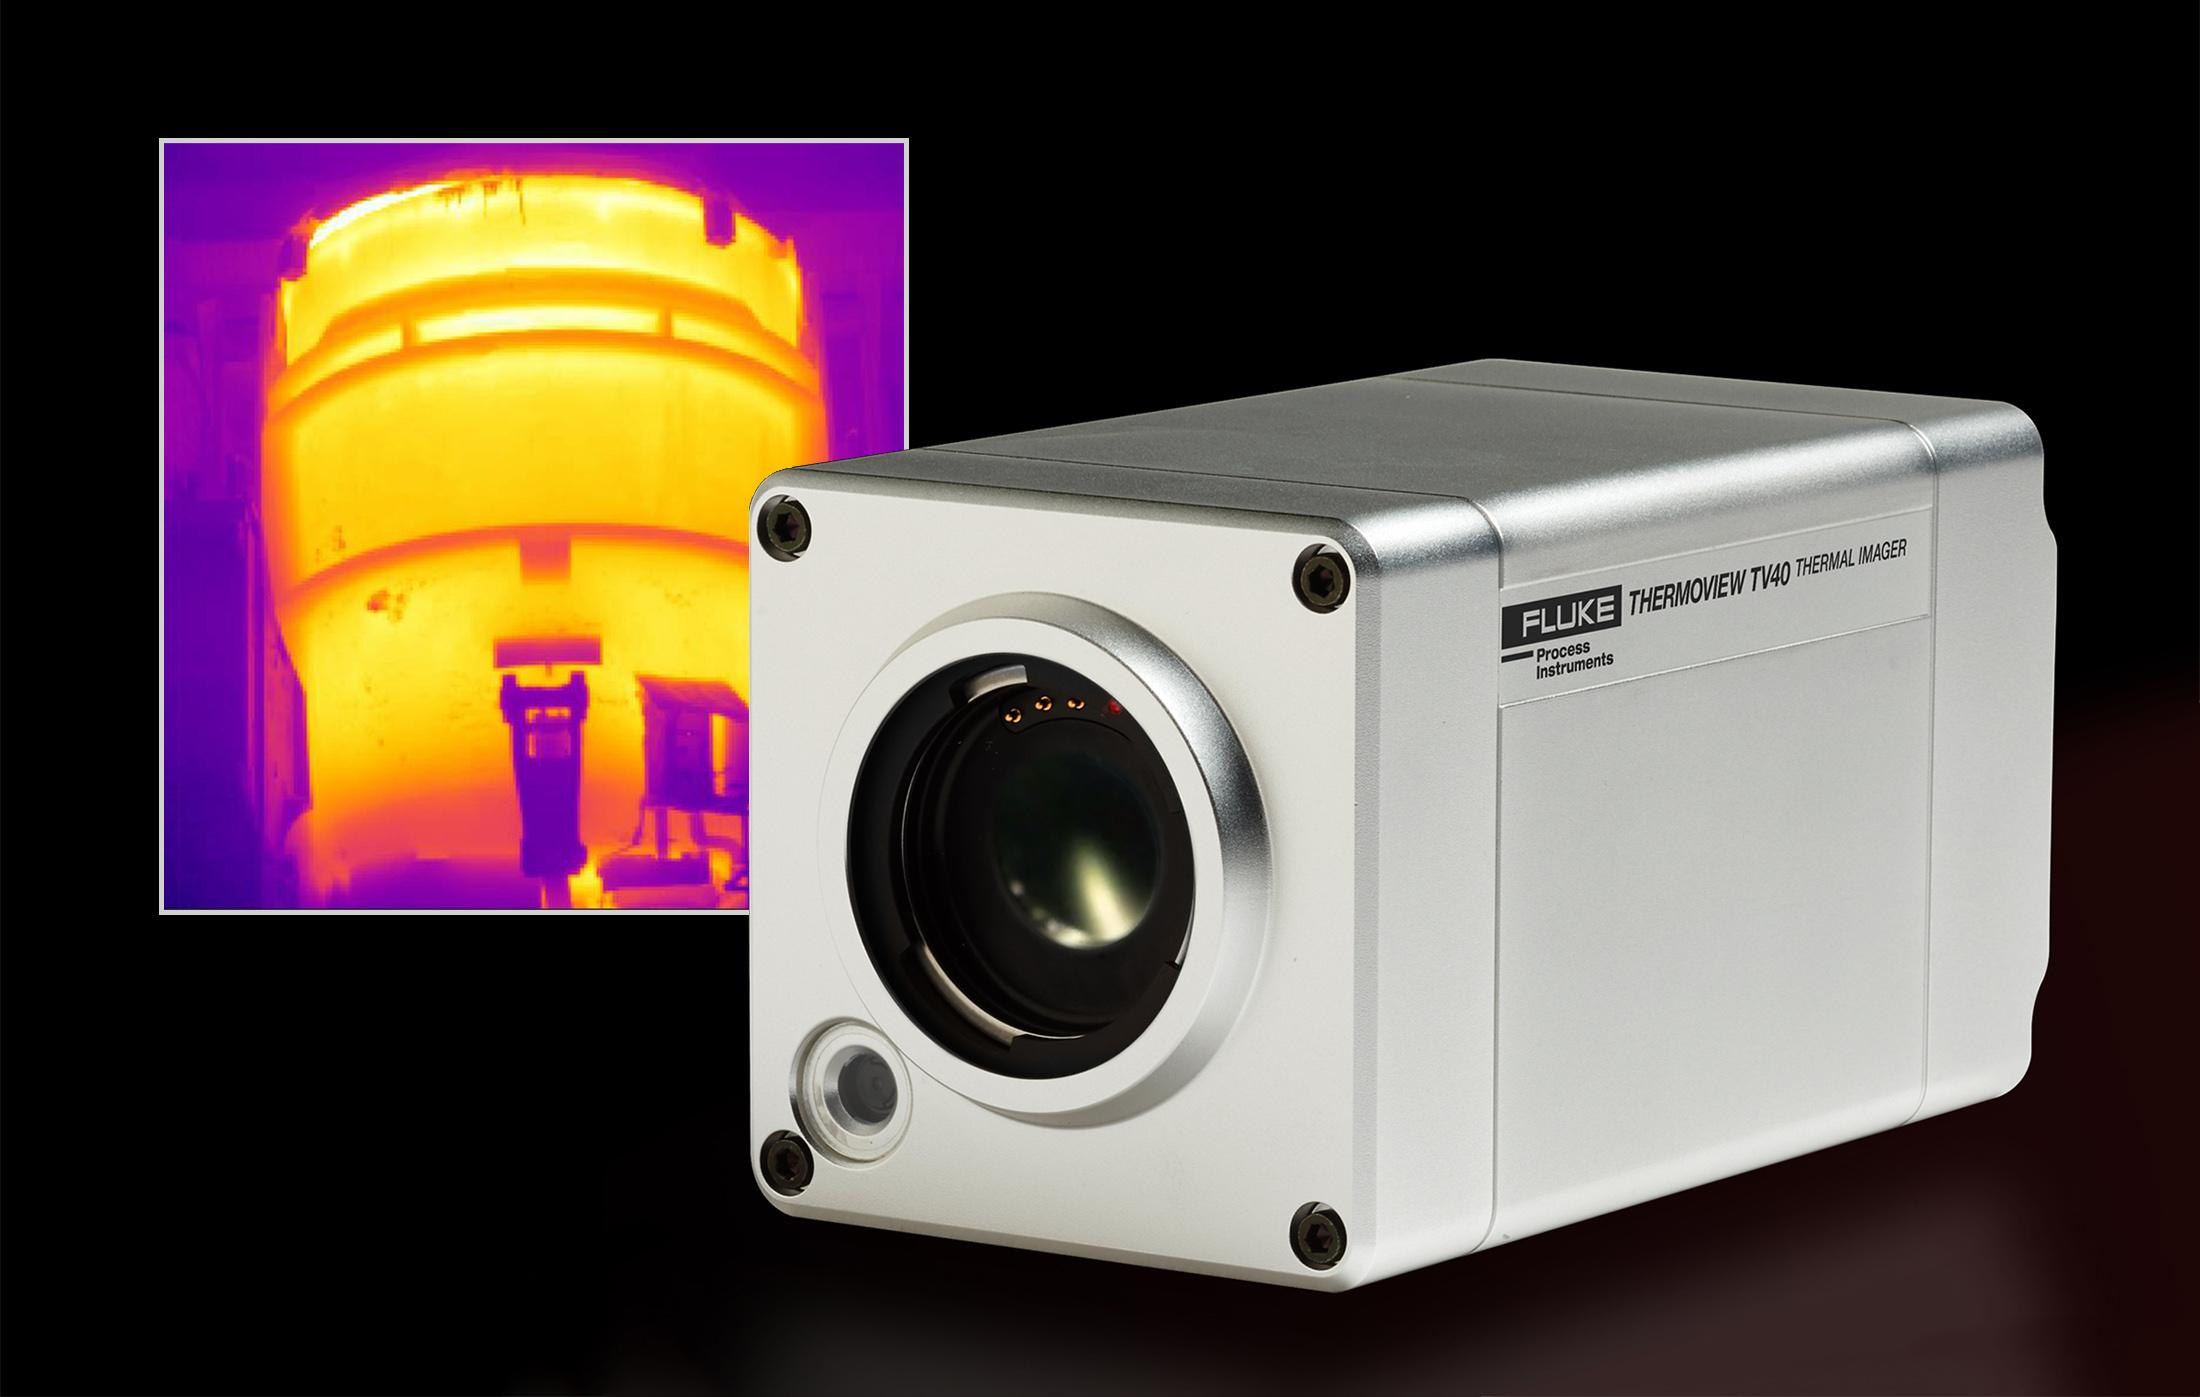 ThermoView TV40 Thermal Imager